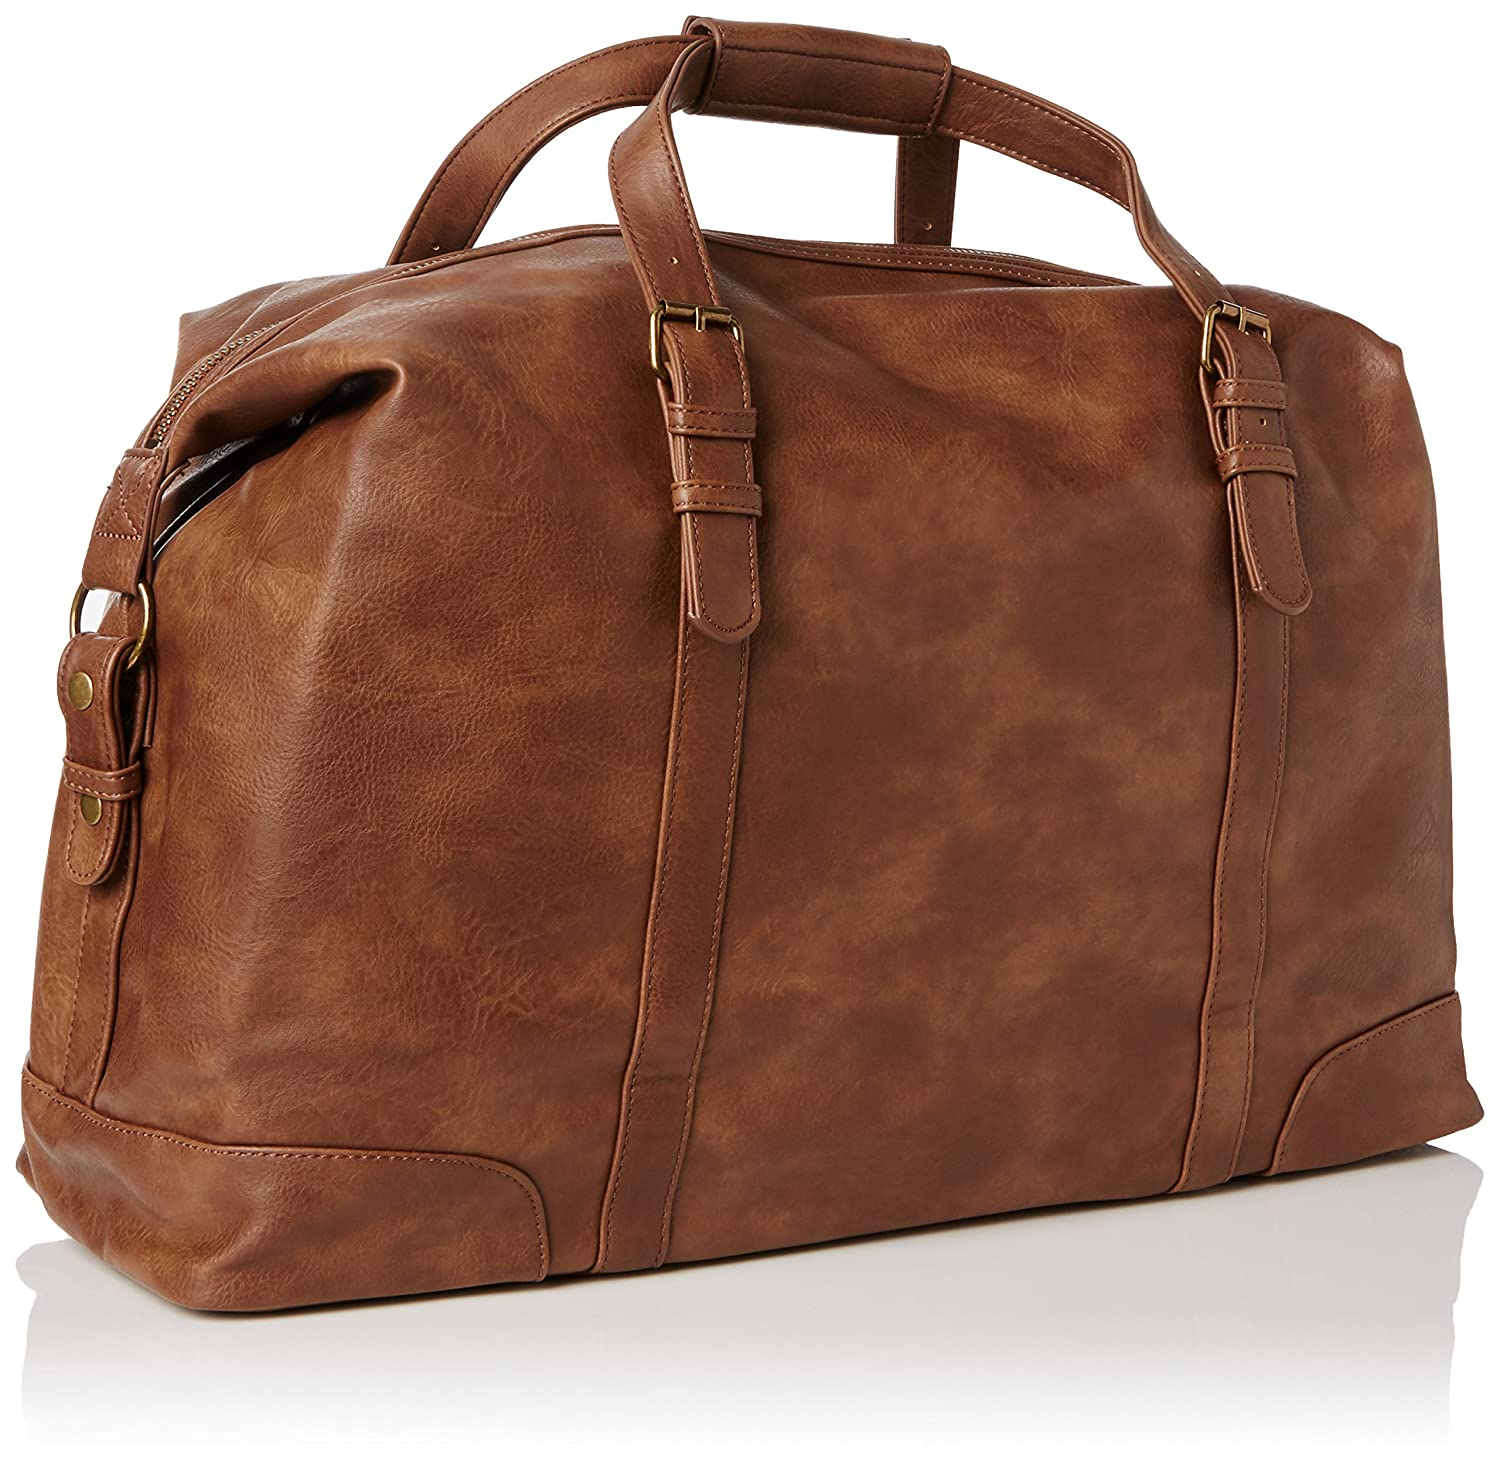 New Look Mens Wandsworth PU Holdall Travel Bag Brown Amazoncouk Shoes Bags